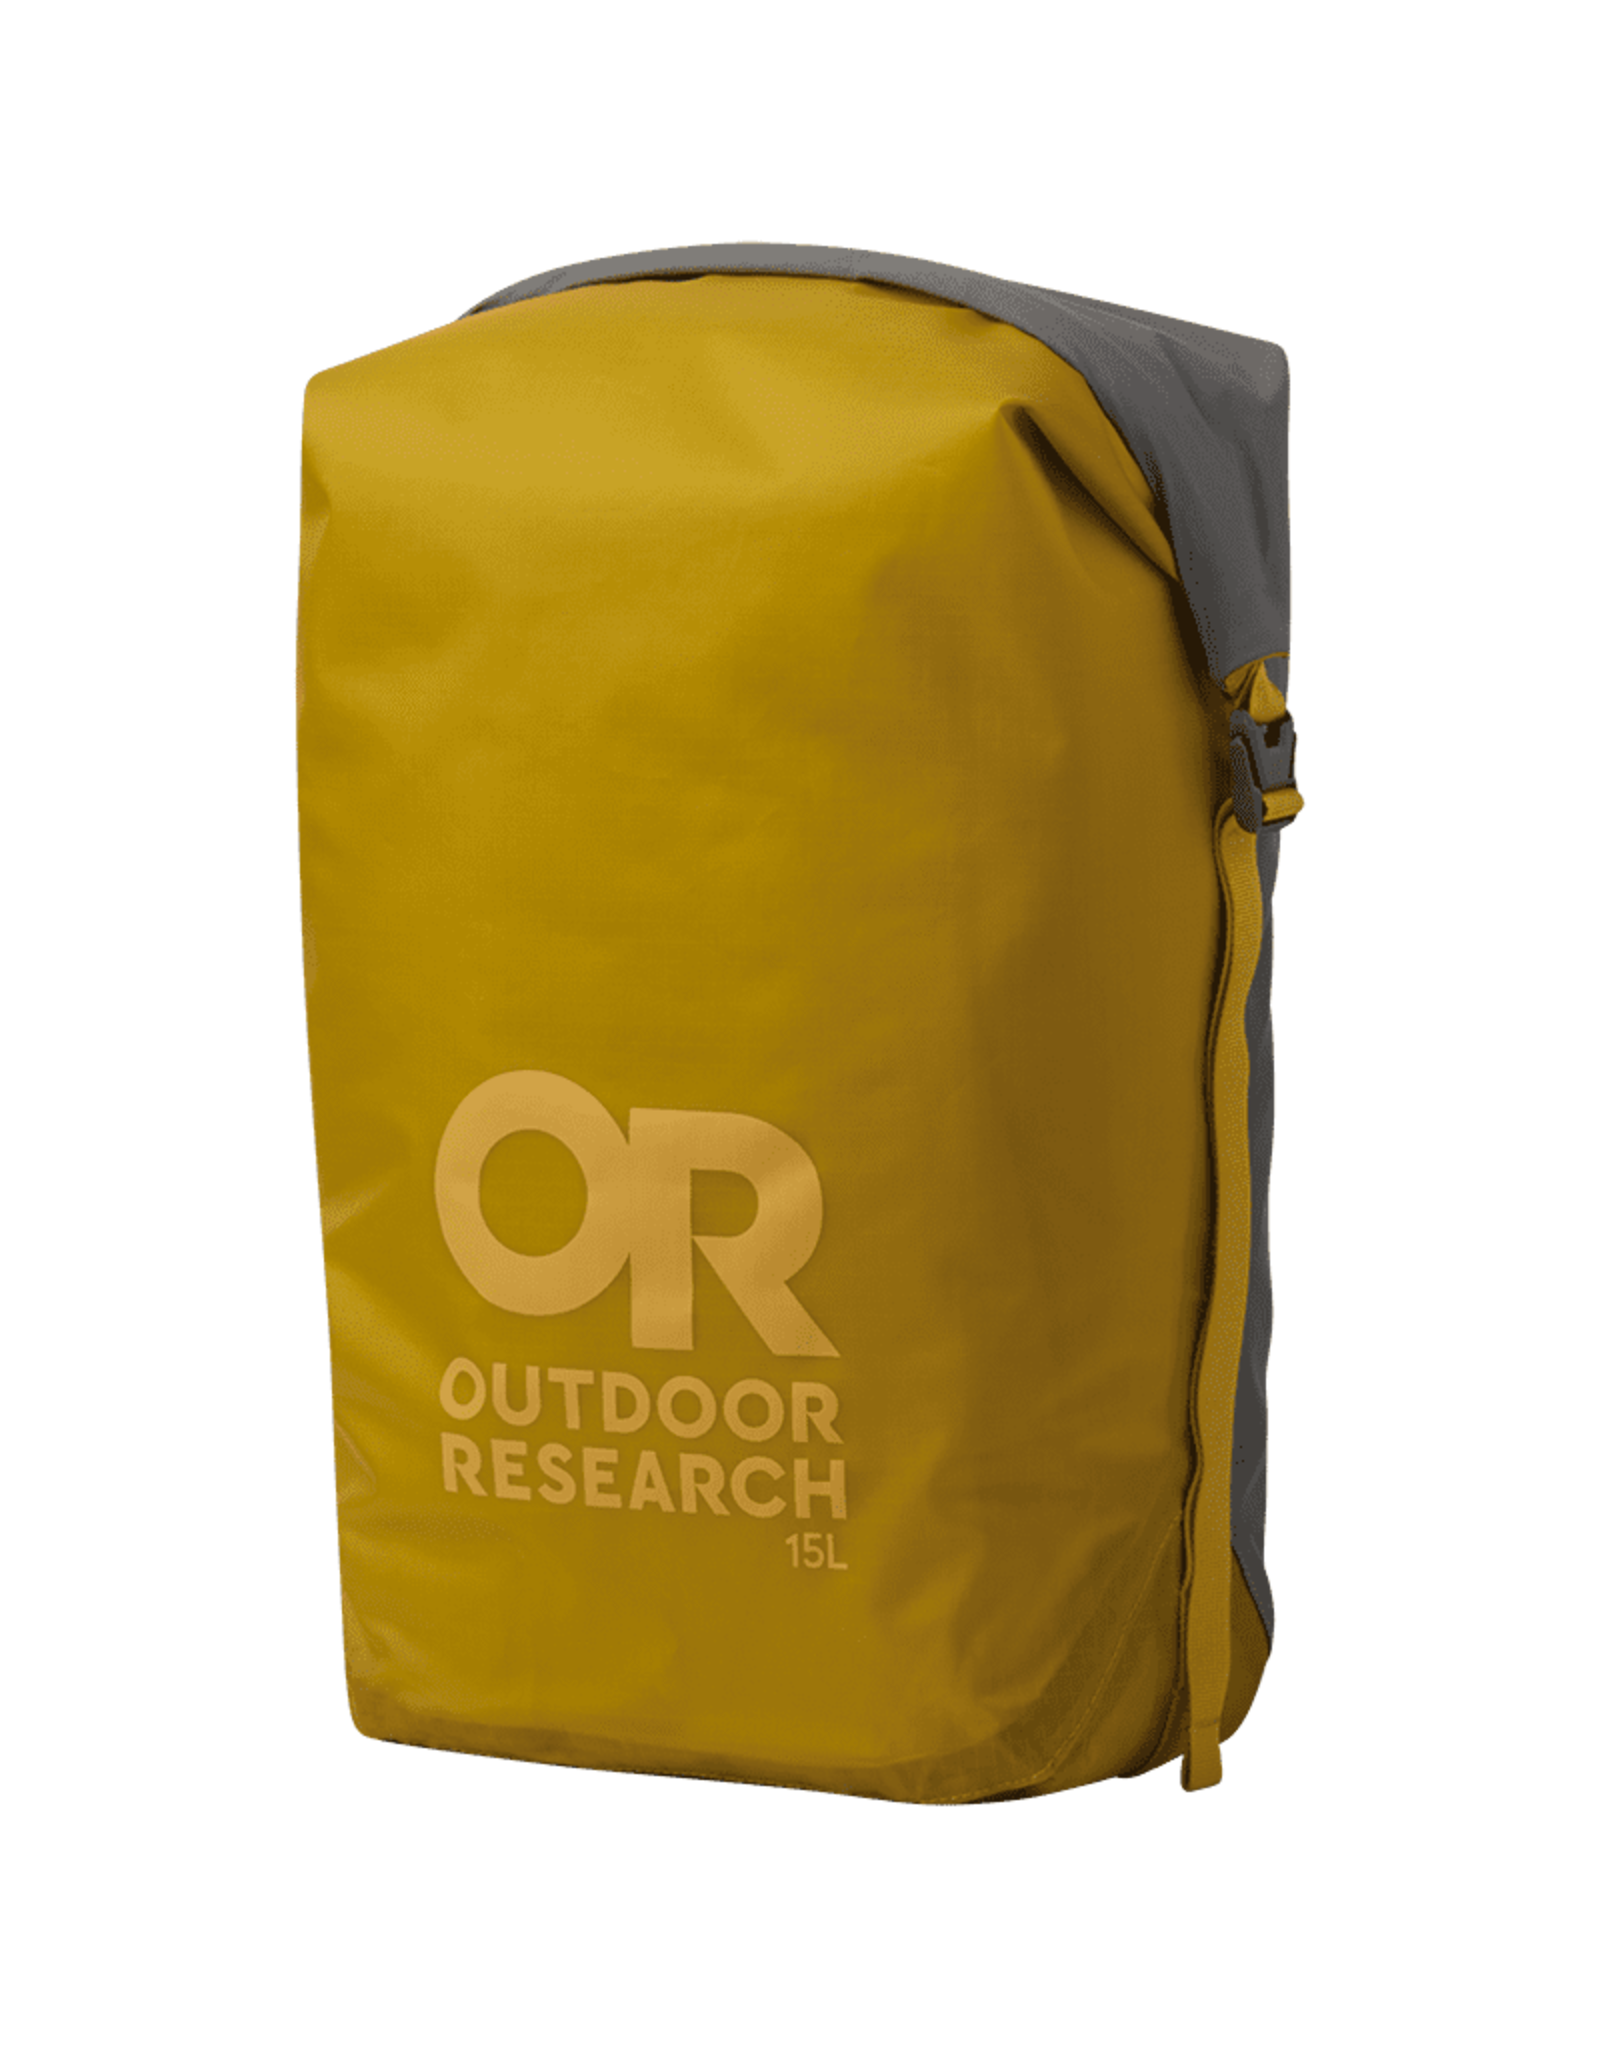 OUTDOOR RESEARCH AIRPURGE COMPRESSION DRY BAG